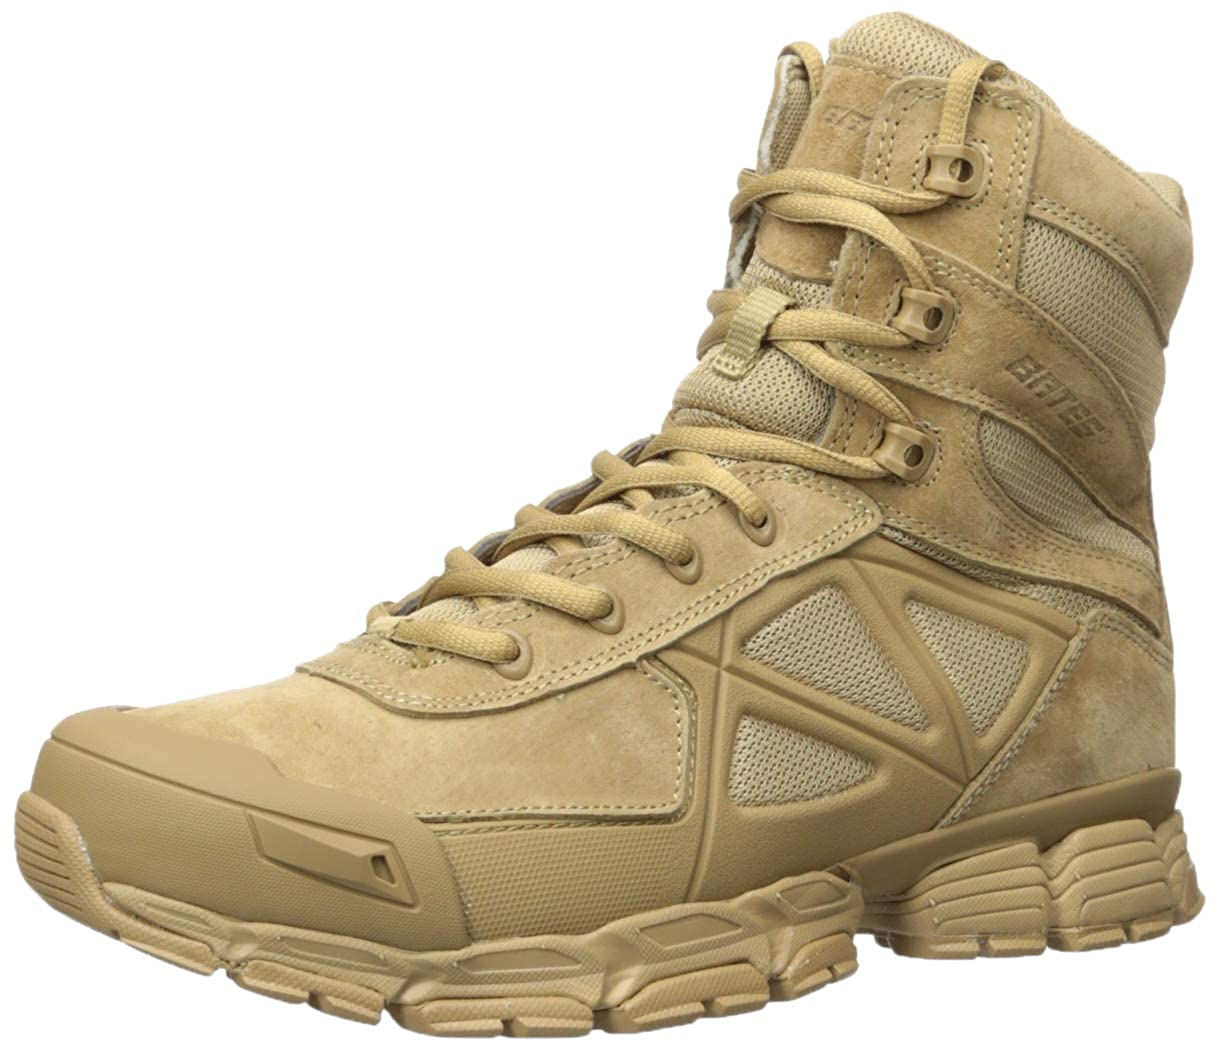 d0a19f35ff2 Bates Men's Velocitor Waterproof Fire and Safety Boot